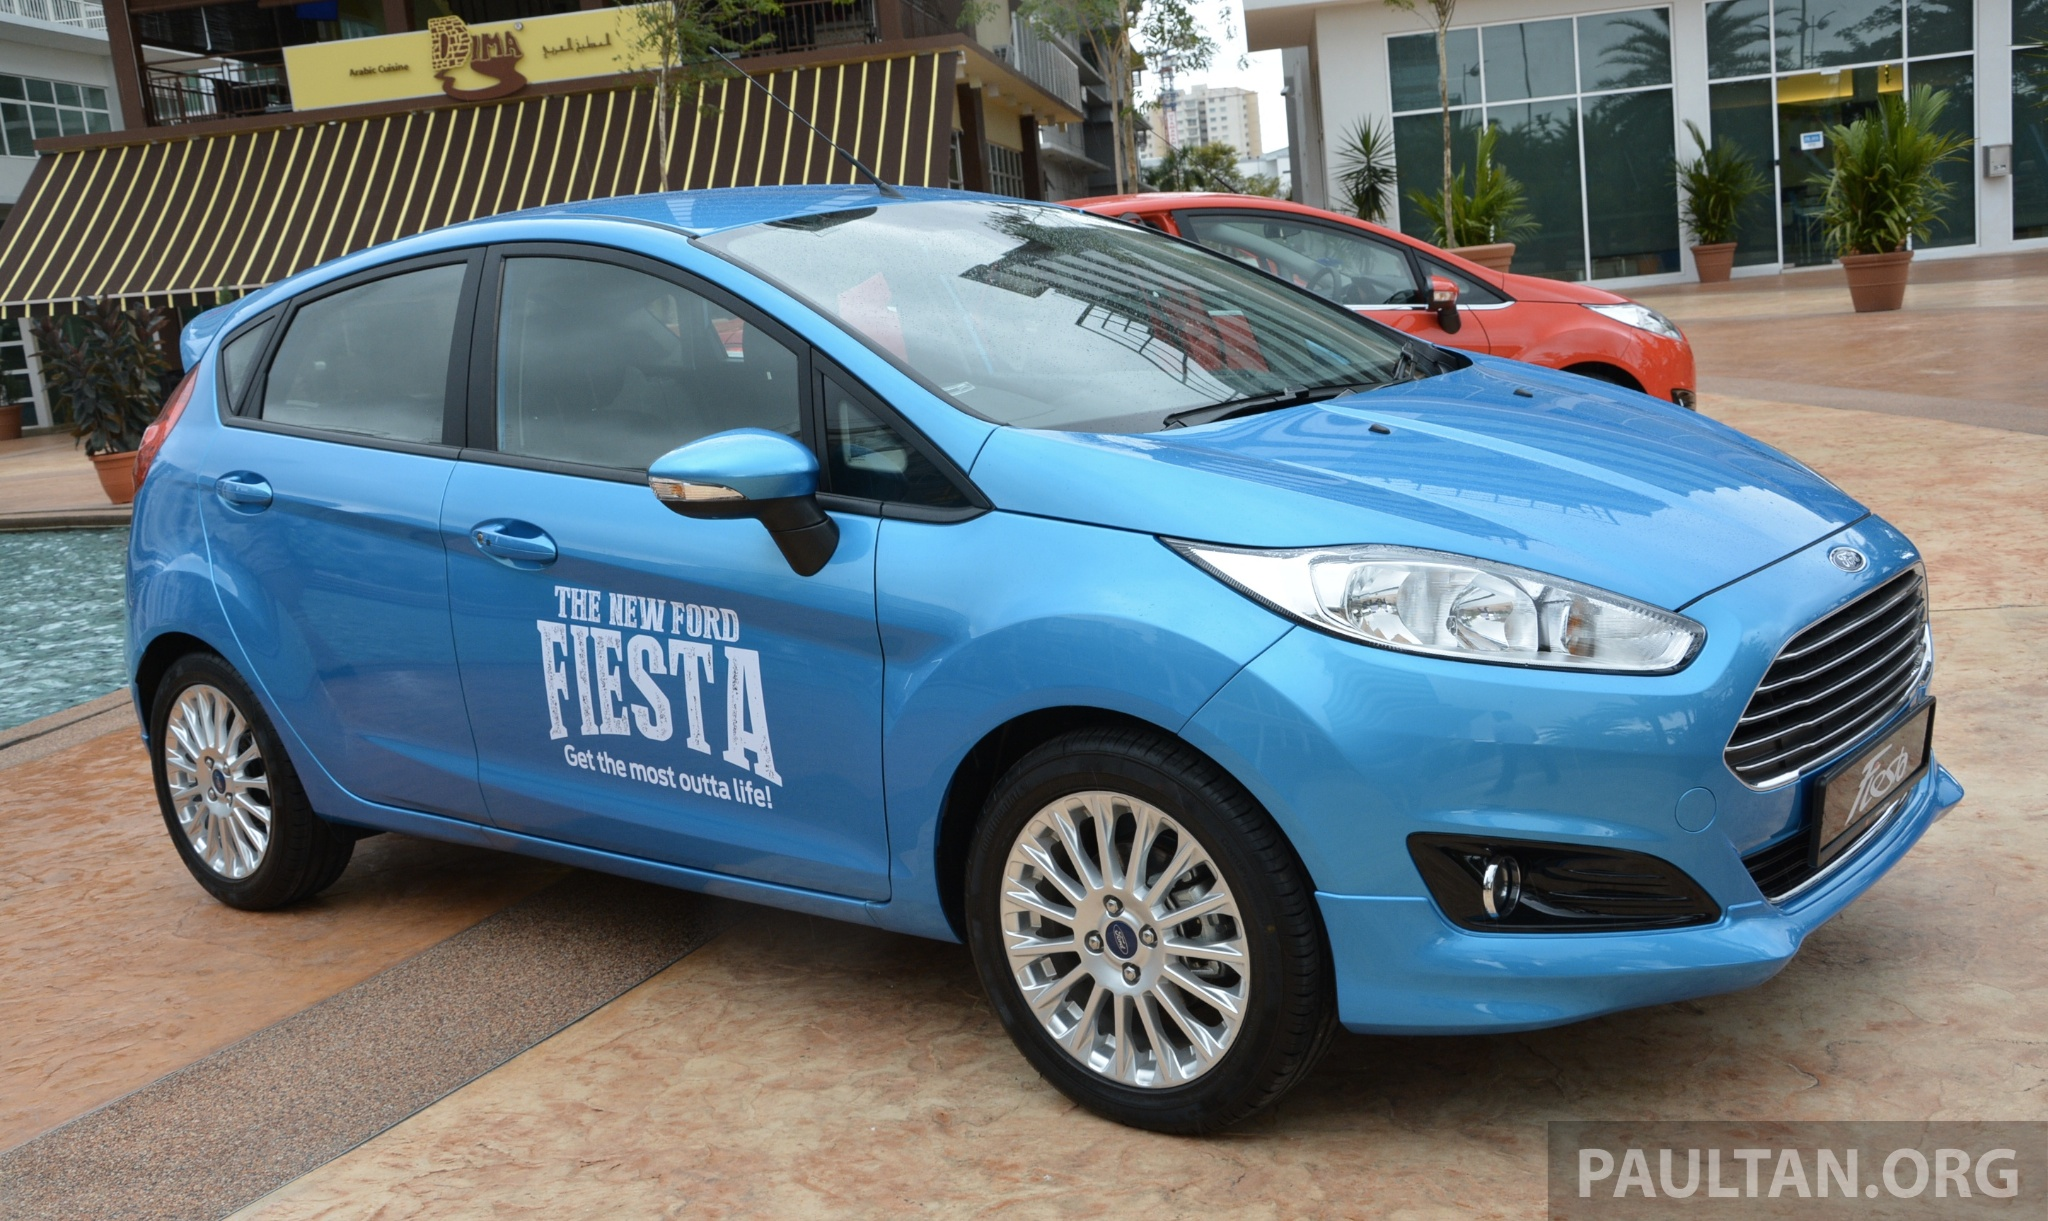 Ford Fiesta 1.5 2013 photo - 3